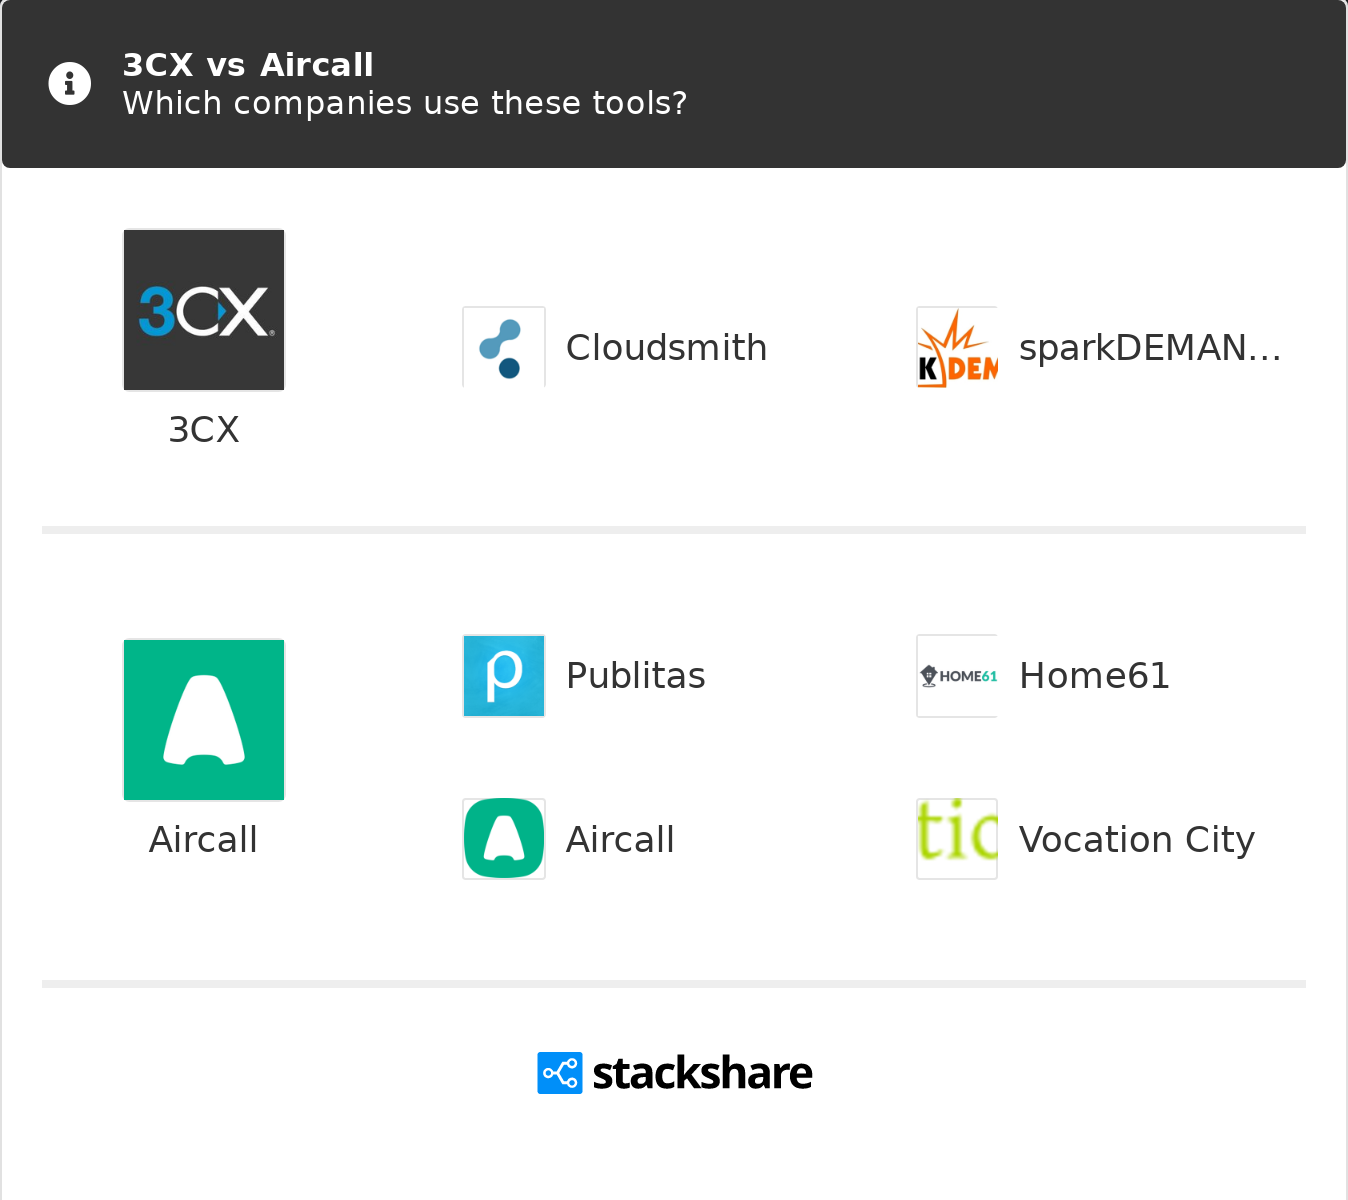 Aircall 3cx vs aircall | what are the differences?